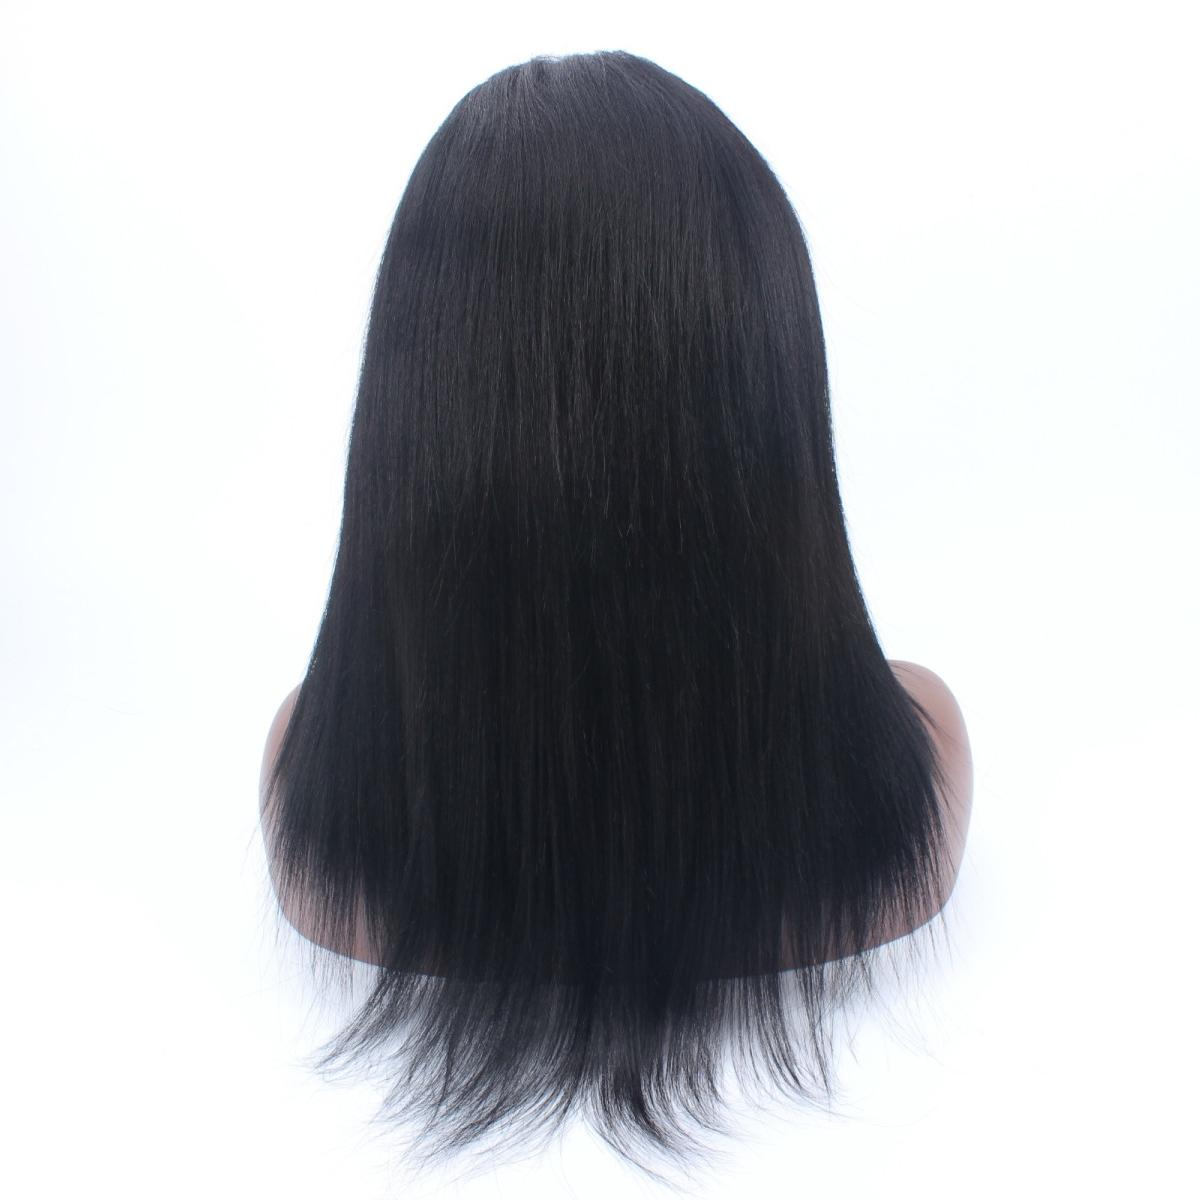 Promotion Lowest Price 150% density hot style Front Lace Human Hair Wigs Virgin Hair yaki Brazilian human lace wigs For Black Women